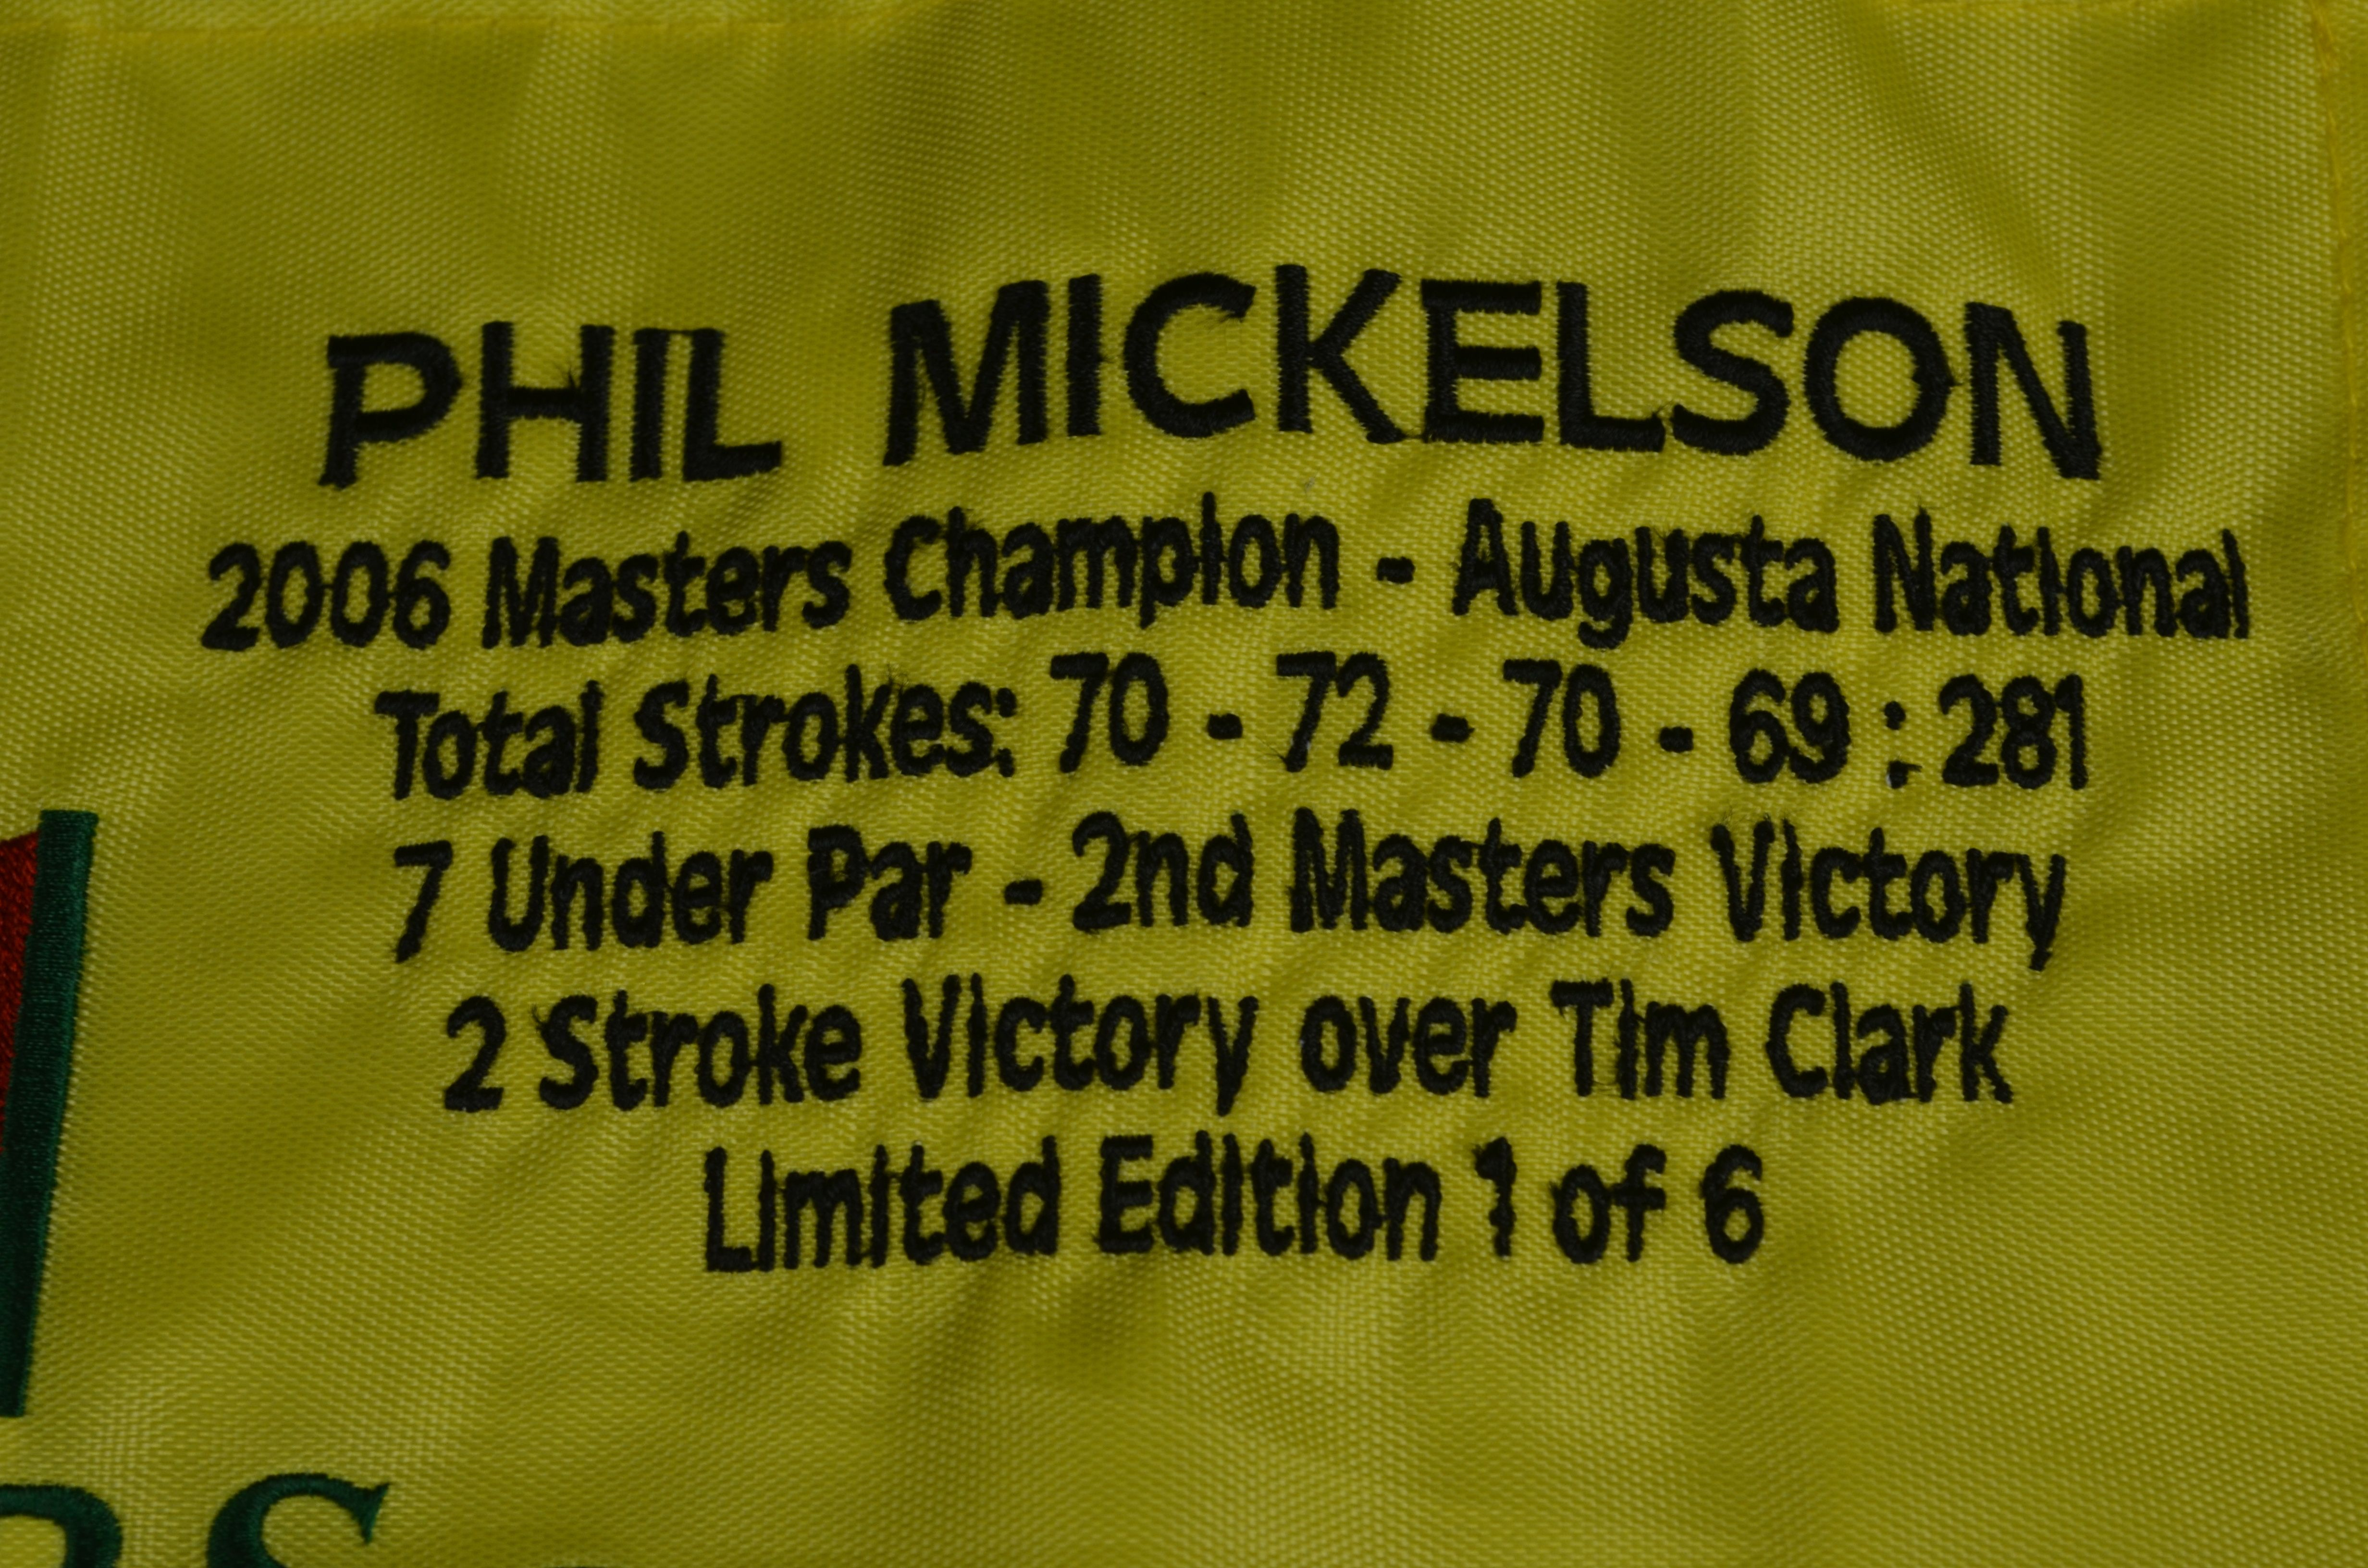 d23b81ca110 Lot Detail - Phil Mickelson Autographed 2006 Masters Flag